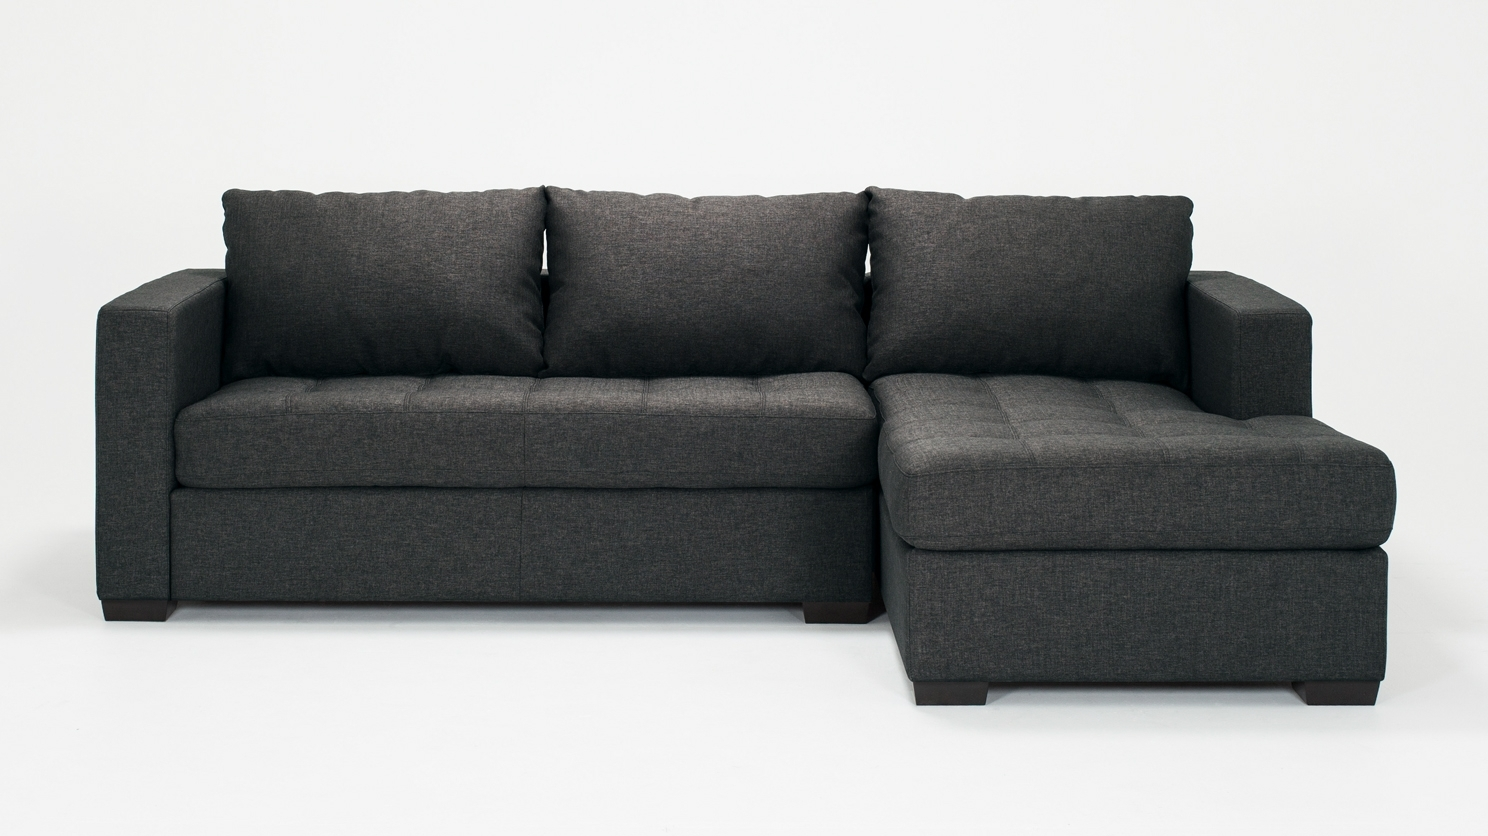 Porter 2 Piece Sectional Sofa With Chaise – Fabric (View 15 of 15)